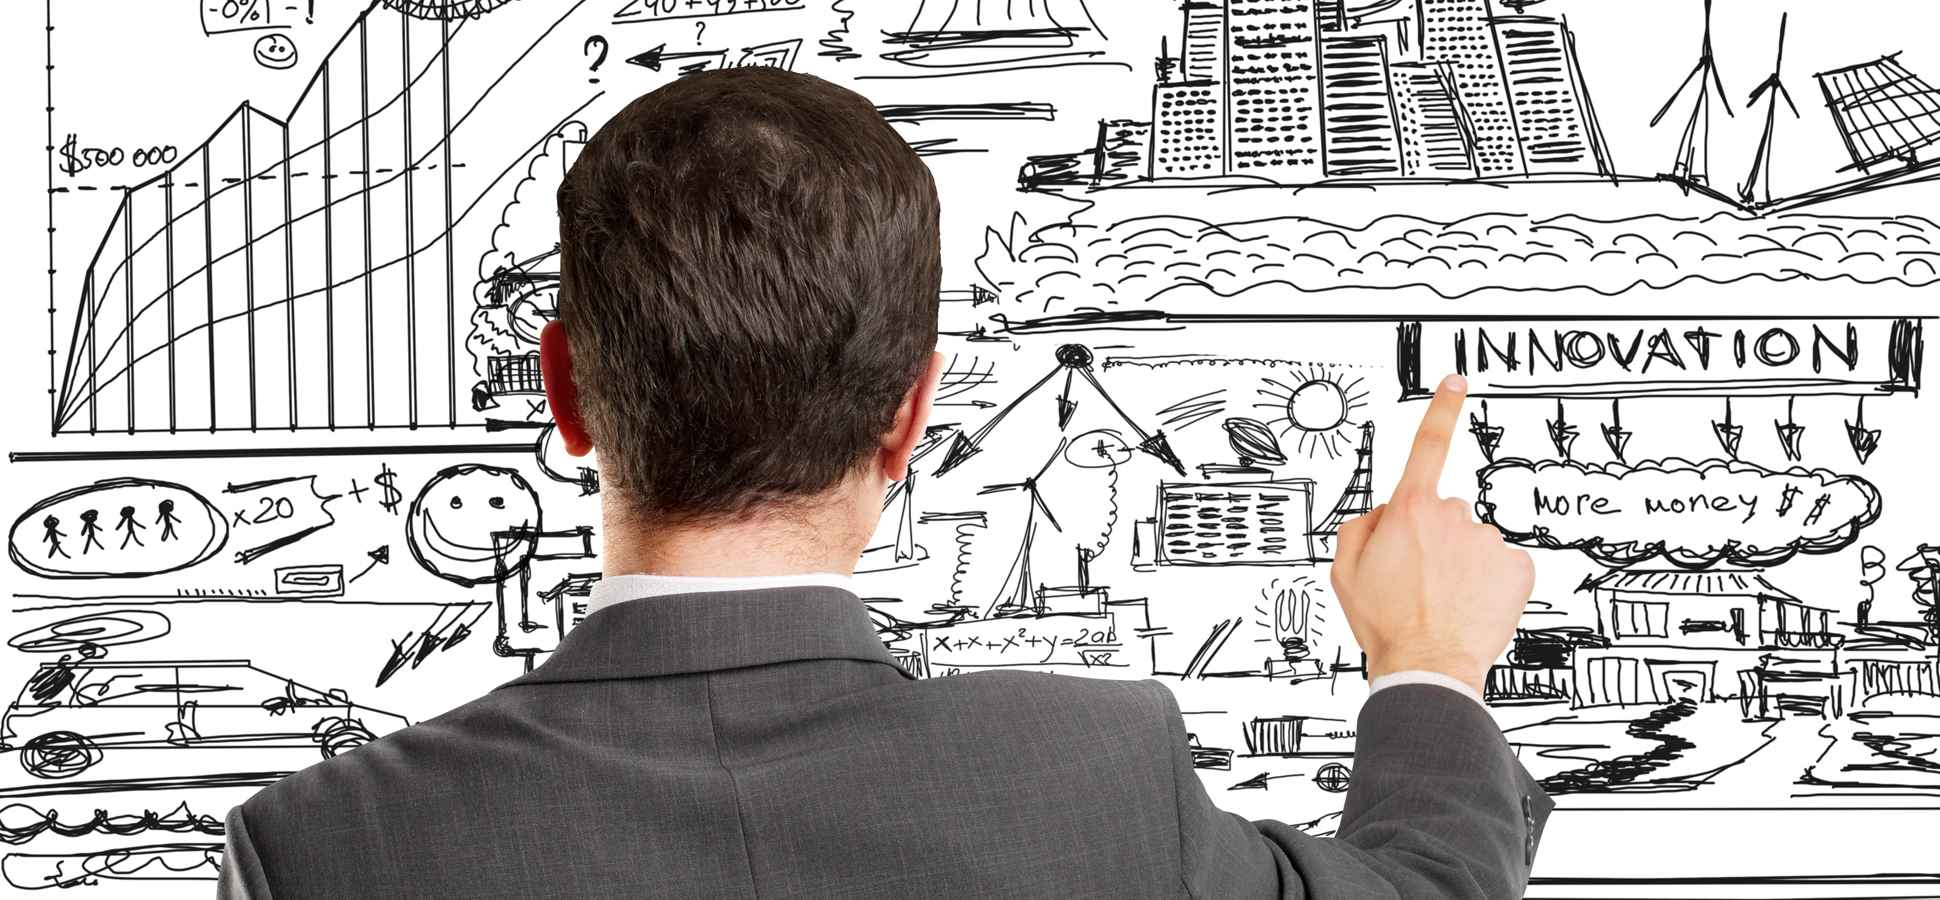 How to Build a Company of Entrepreneurs